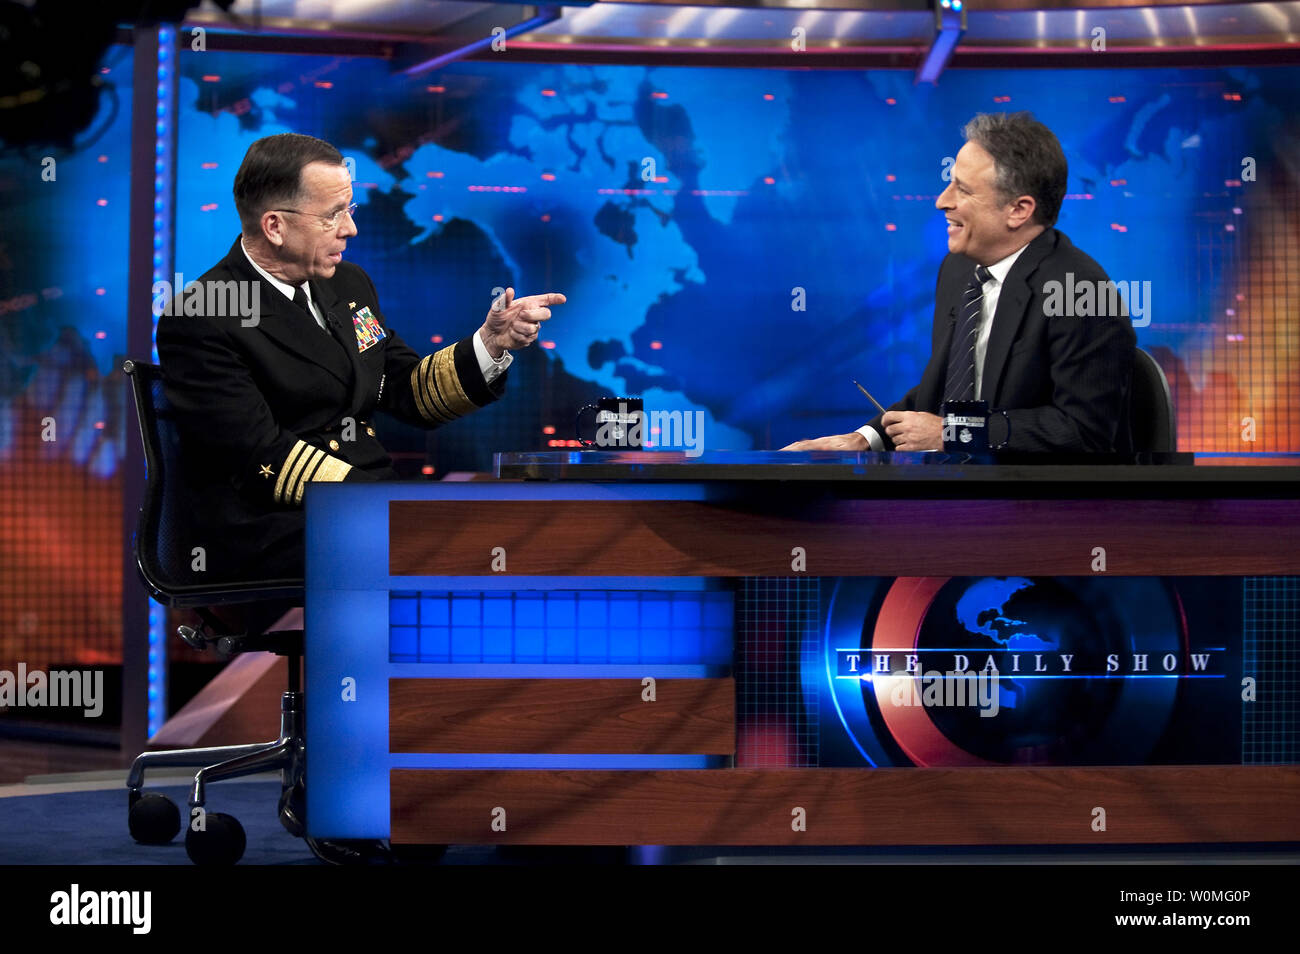 Chairman of the Joint Chiefs of Staff Admiral Mike Mullen (L) appears on The Daily Show with Jon Stewart in New York on January 6, 2010. UPI/Chad J. McNeeley/U.S. Navy Stock Photo